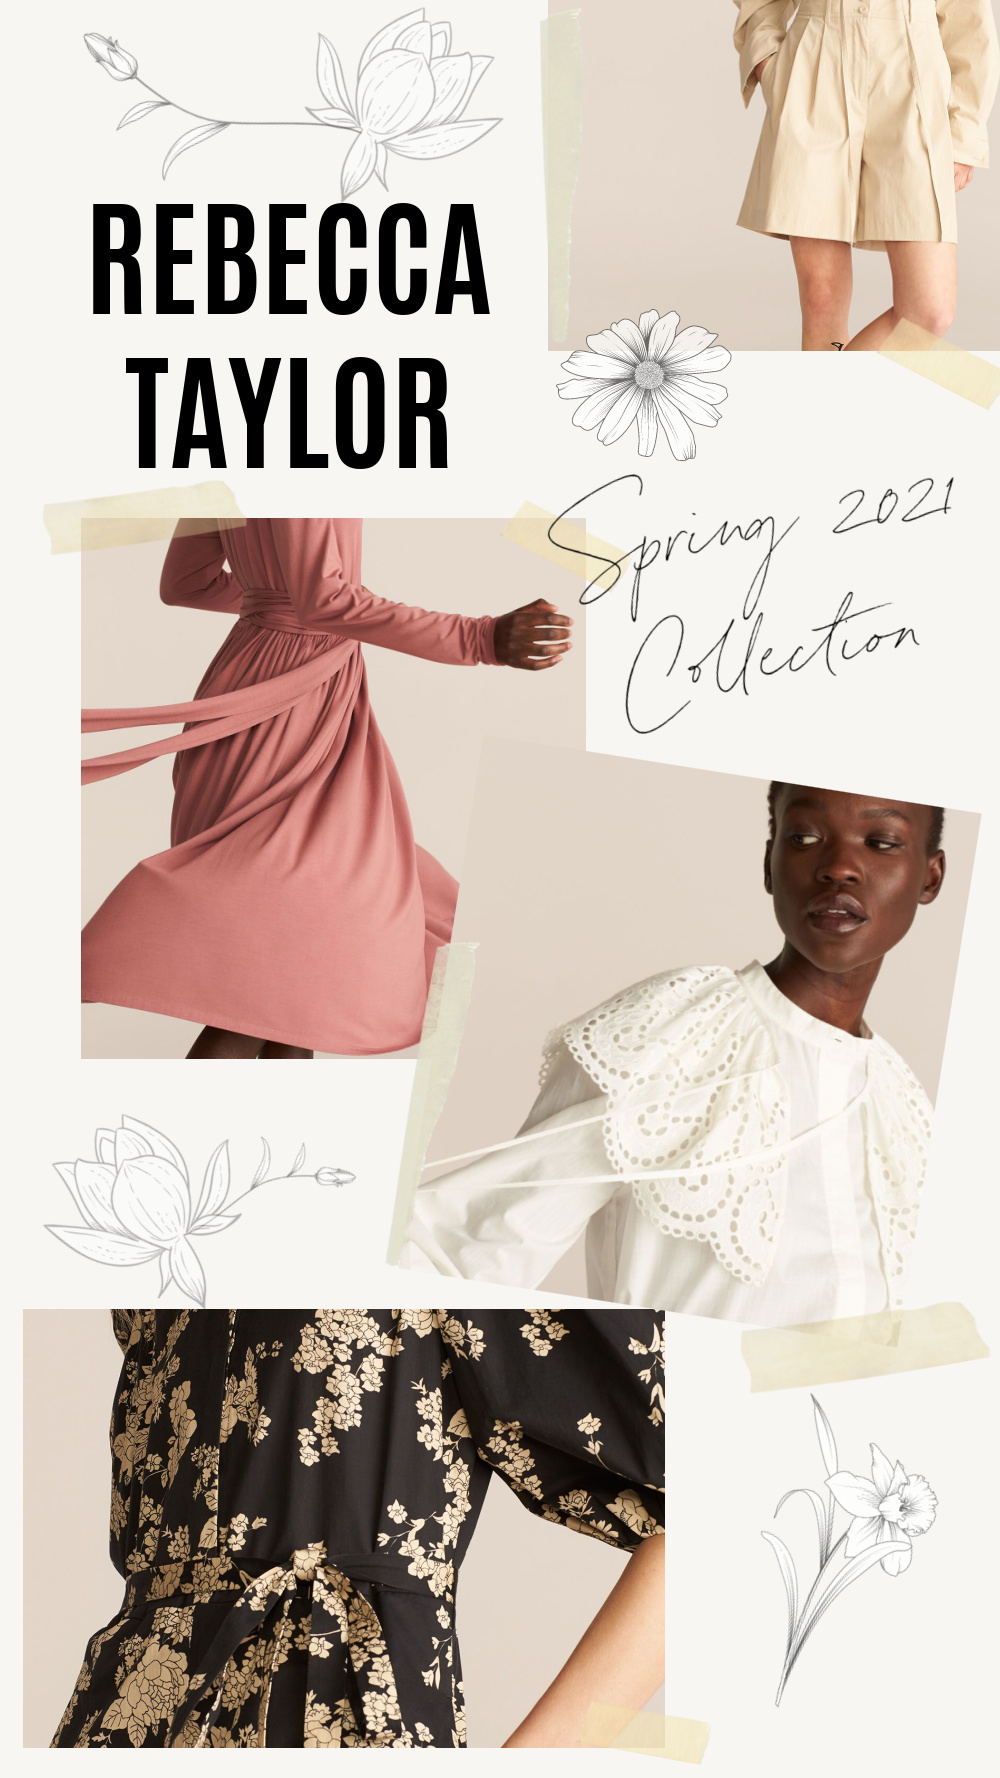 Rebecca Taylor Spring 2021 Collection by Steven Cateron I DreaminLace.com #springstyle #outfitideas #fashionblog